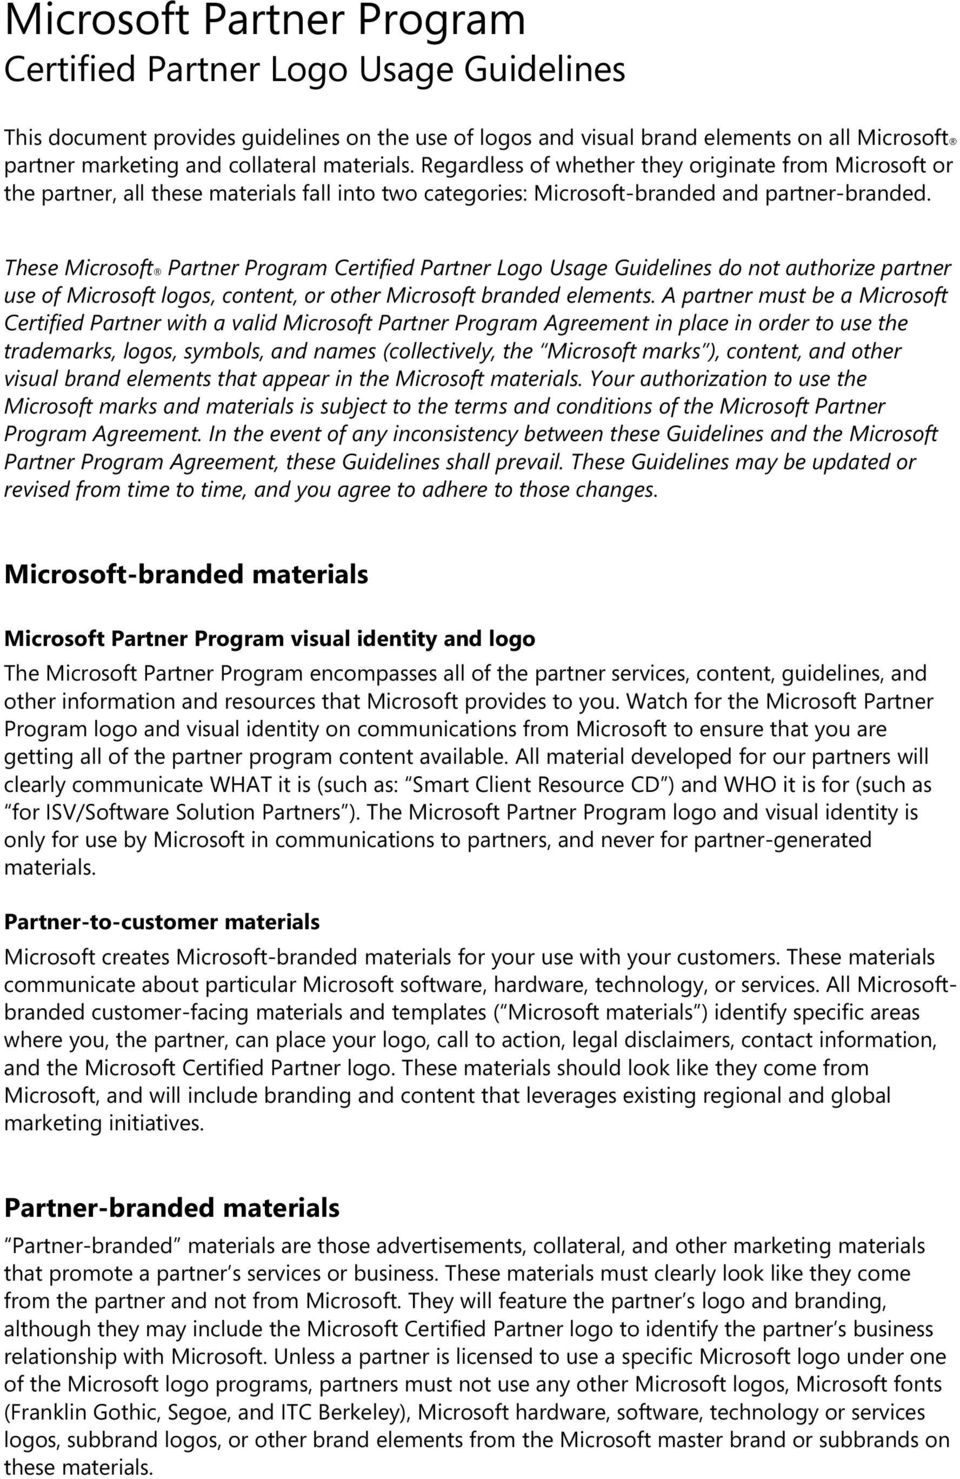 Microsoft Partner Program Certified Partner Logo Usage Guidelines Pdf